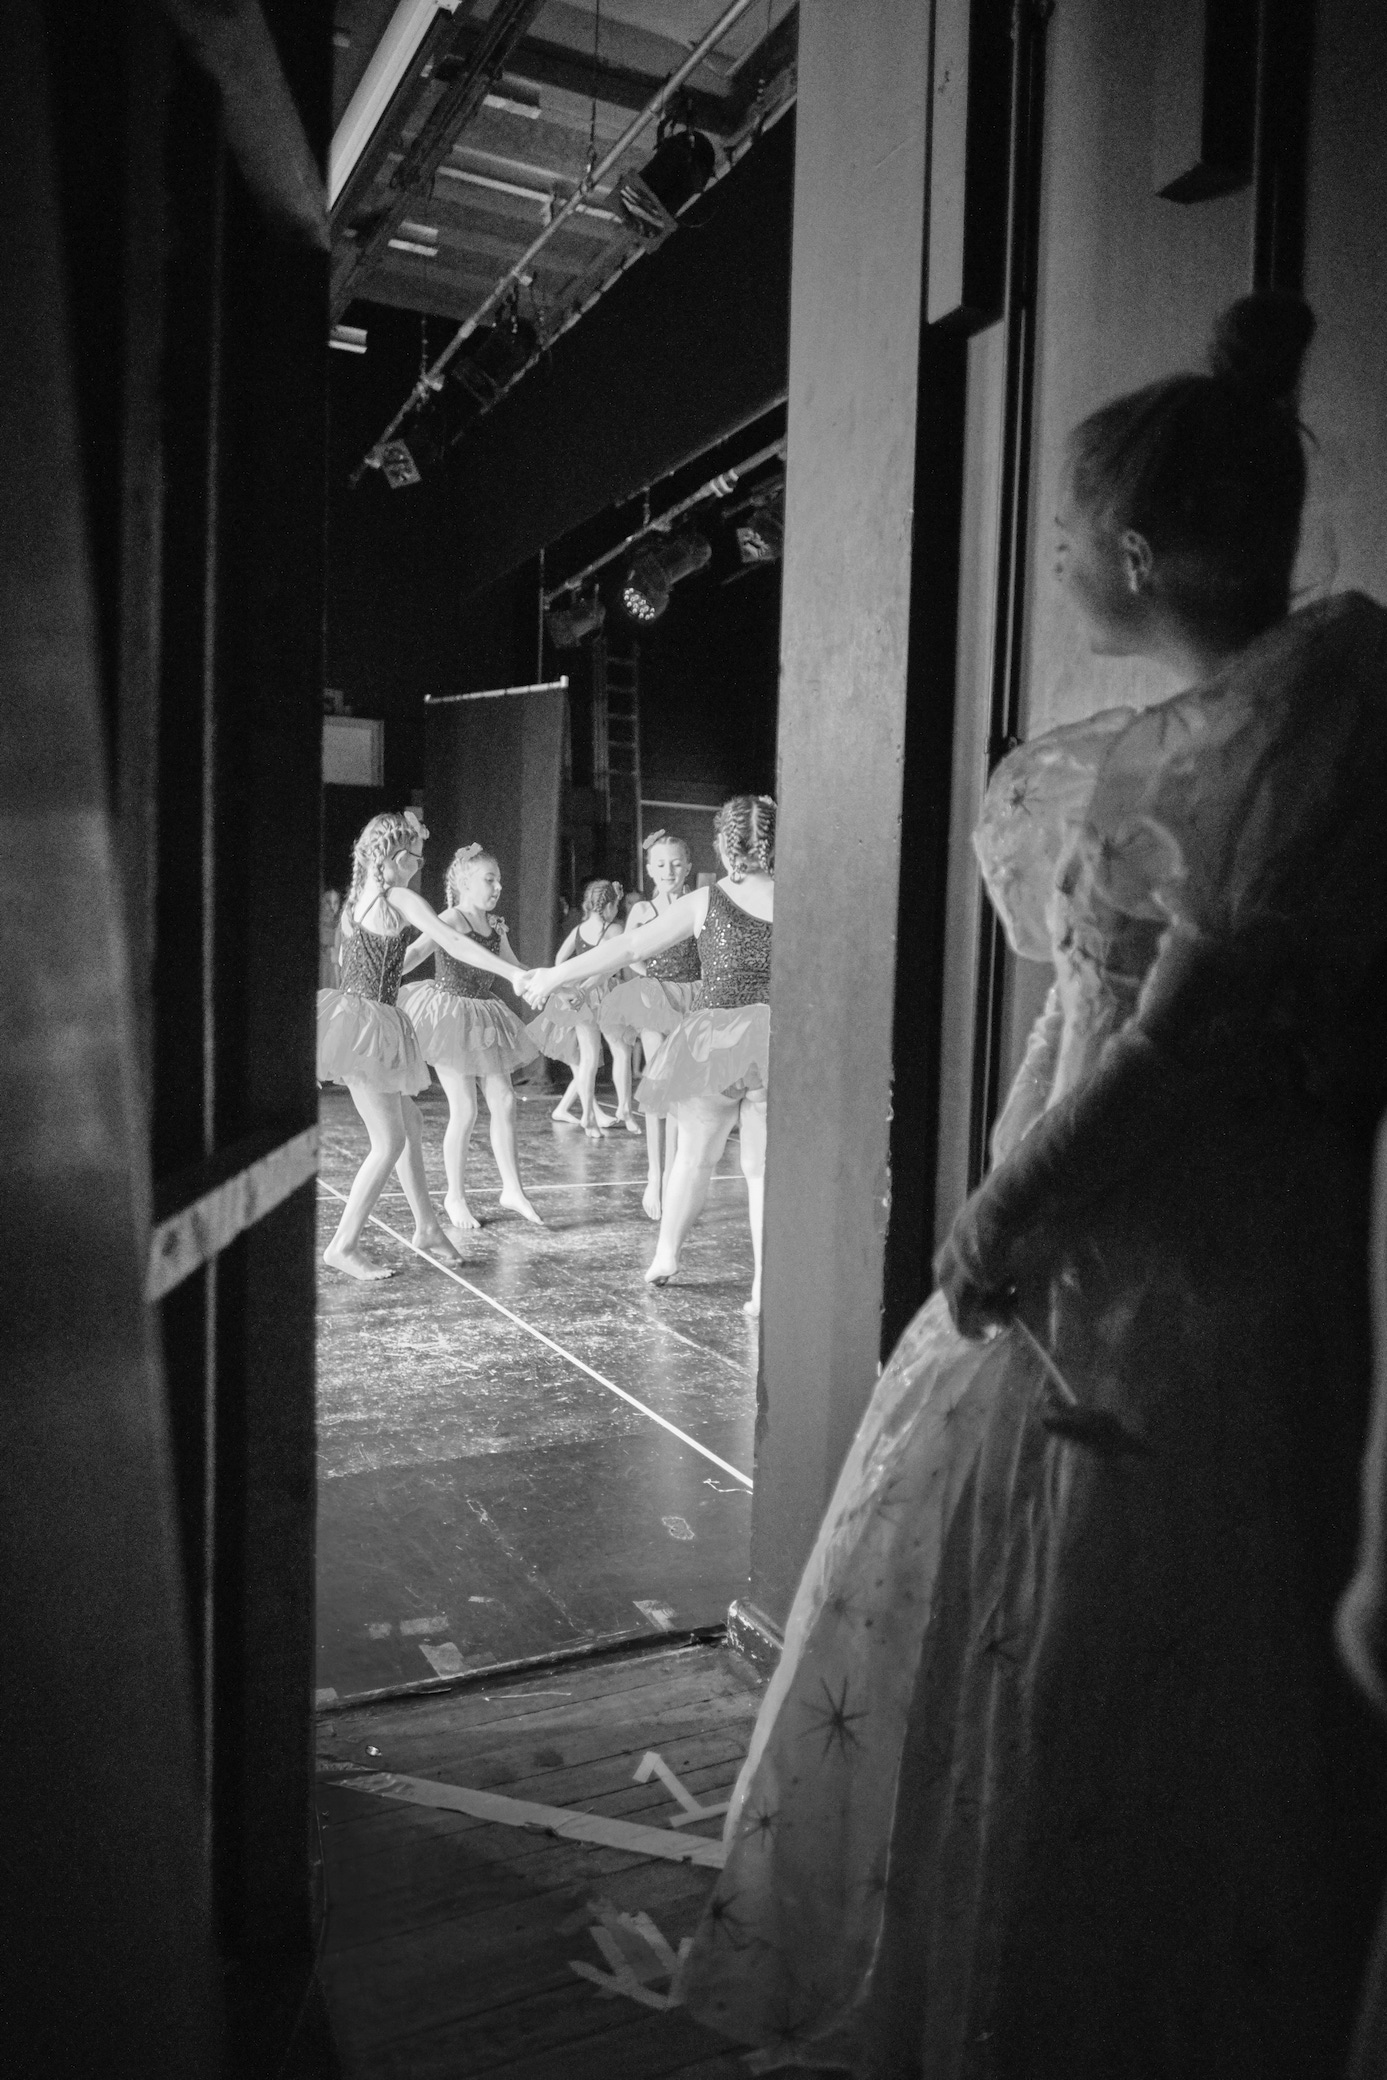 Behind the stage photography